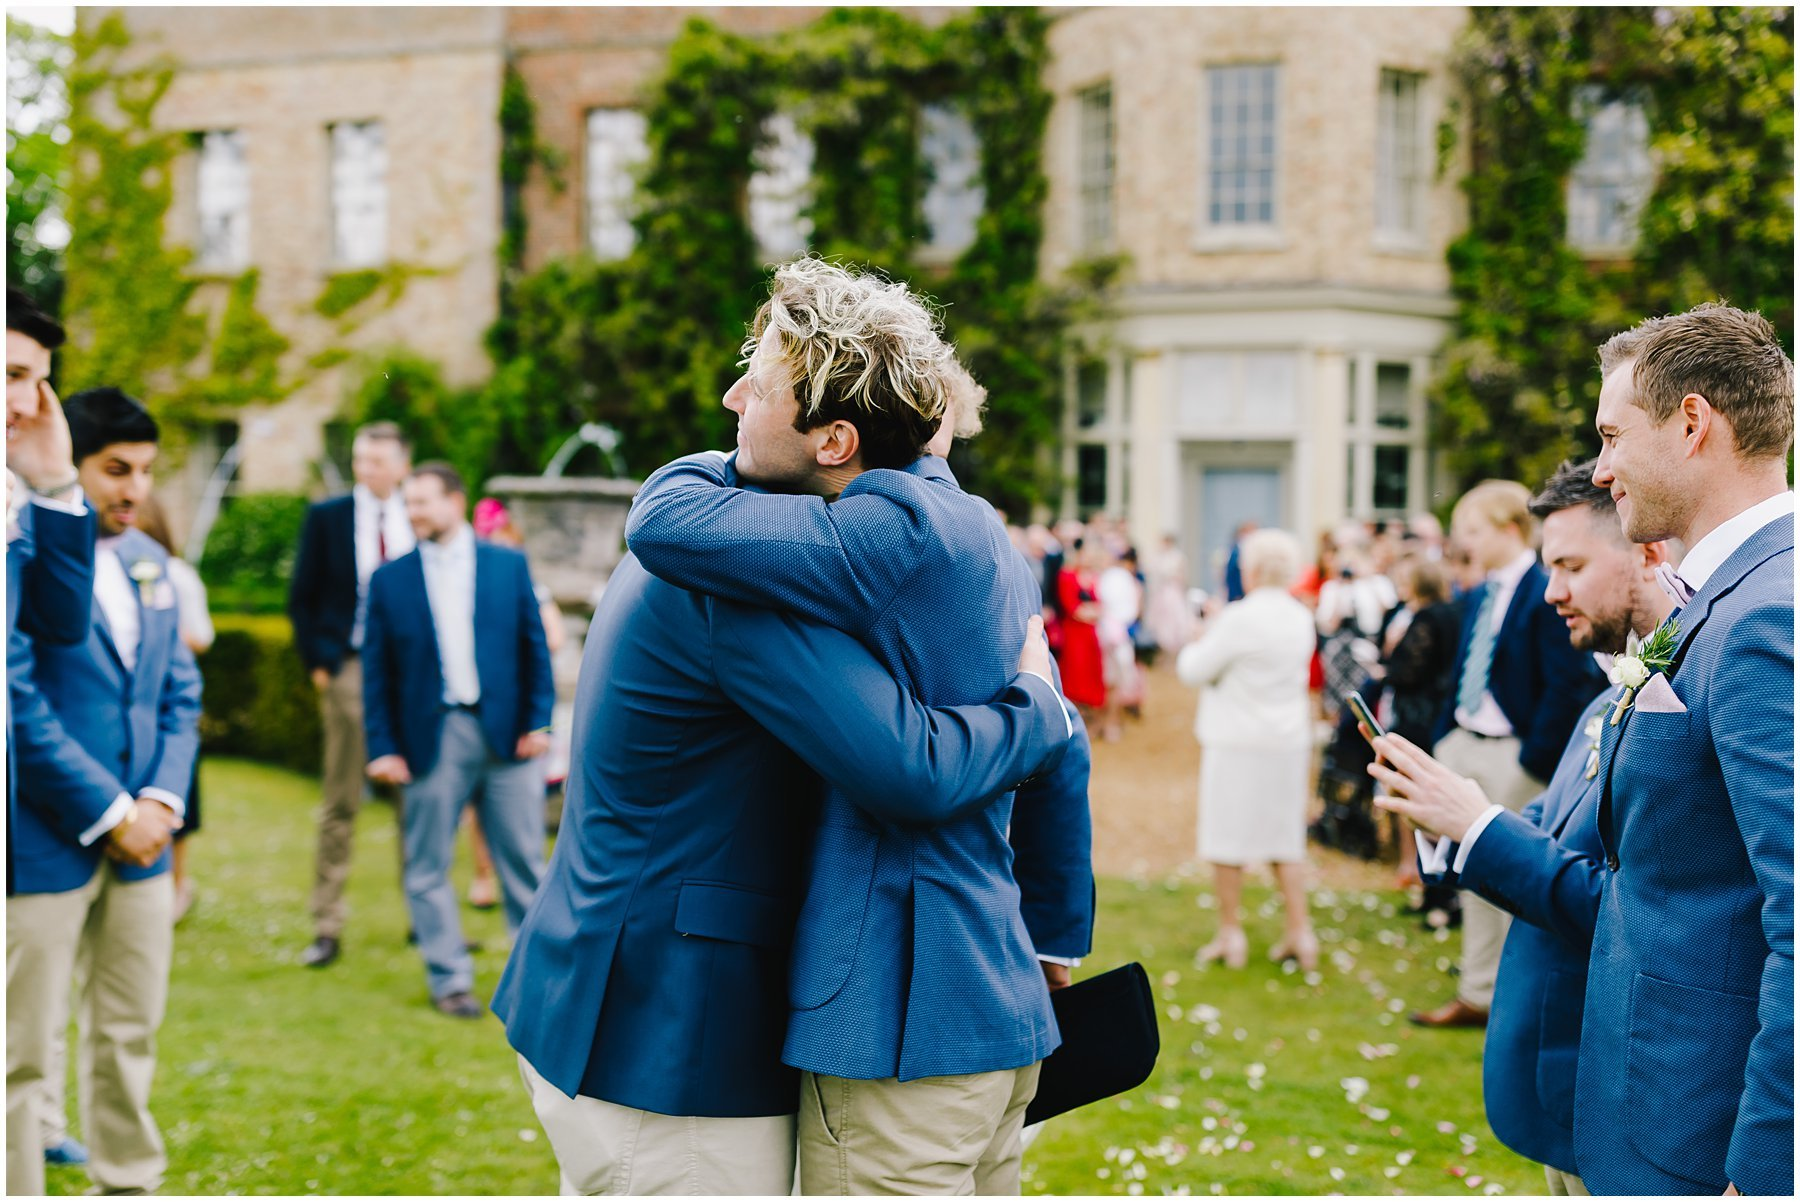 NARBOROUGH HALL WEDDING PHOTOGRAPHER